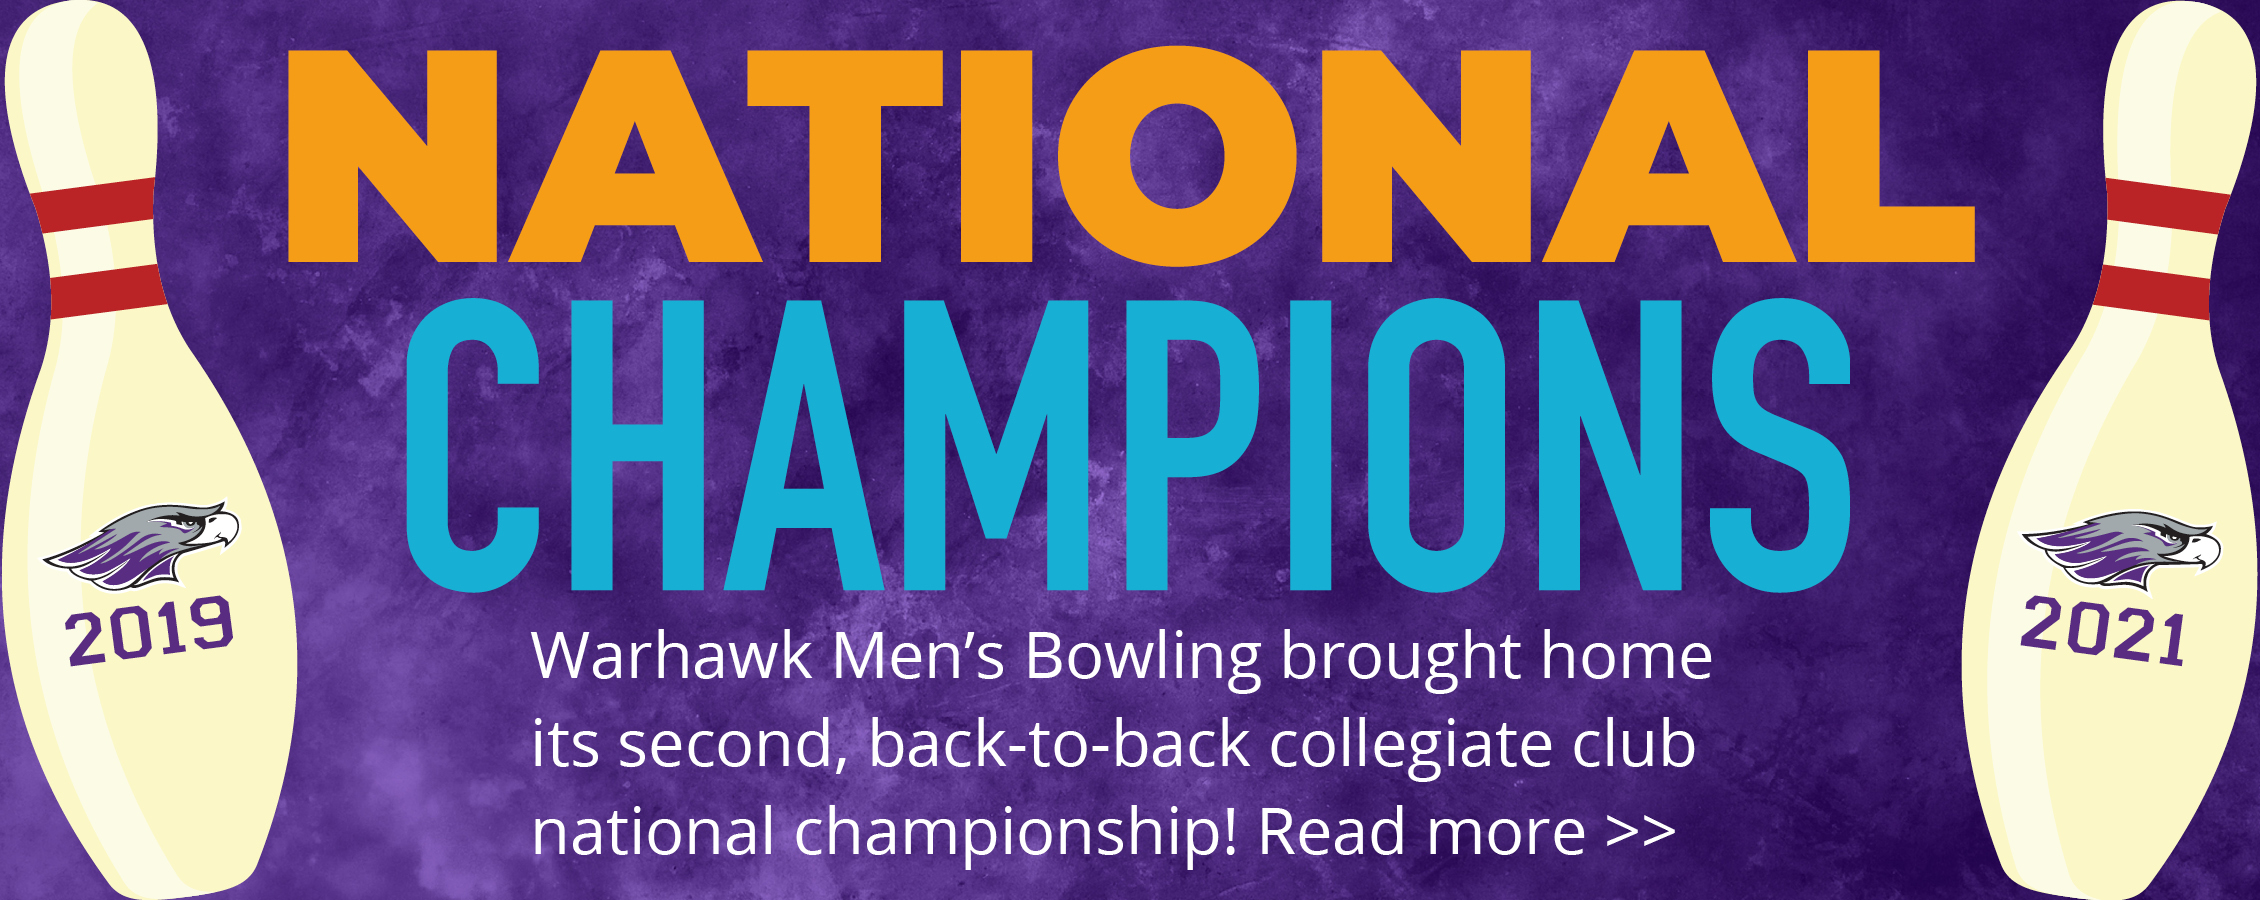 National Champions graphic.